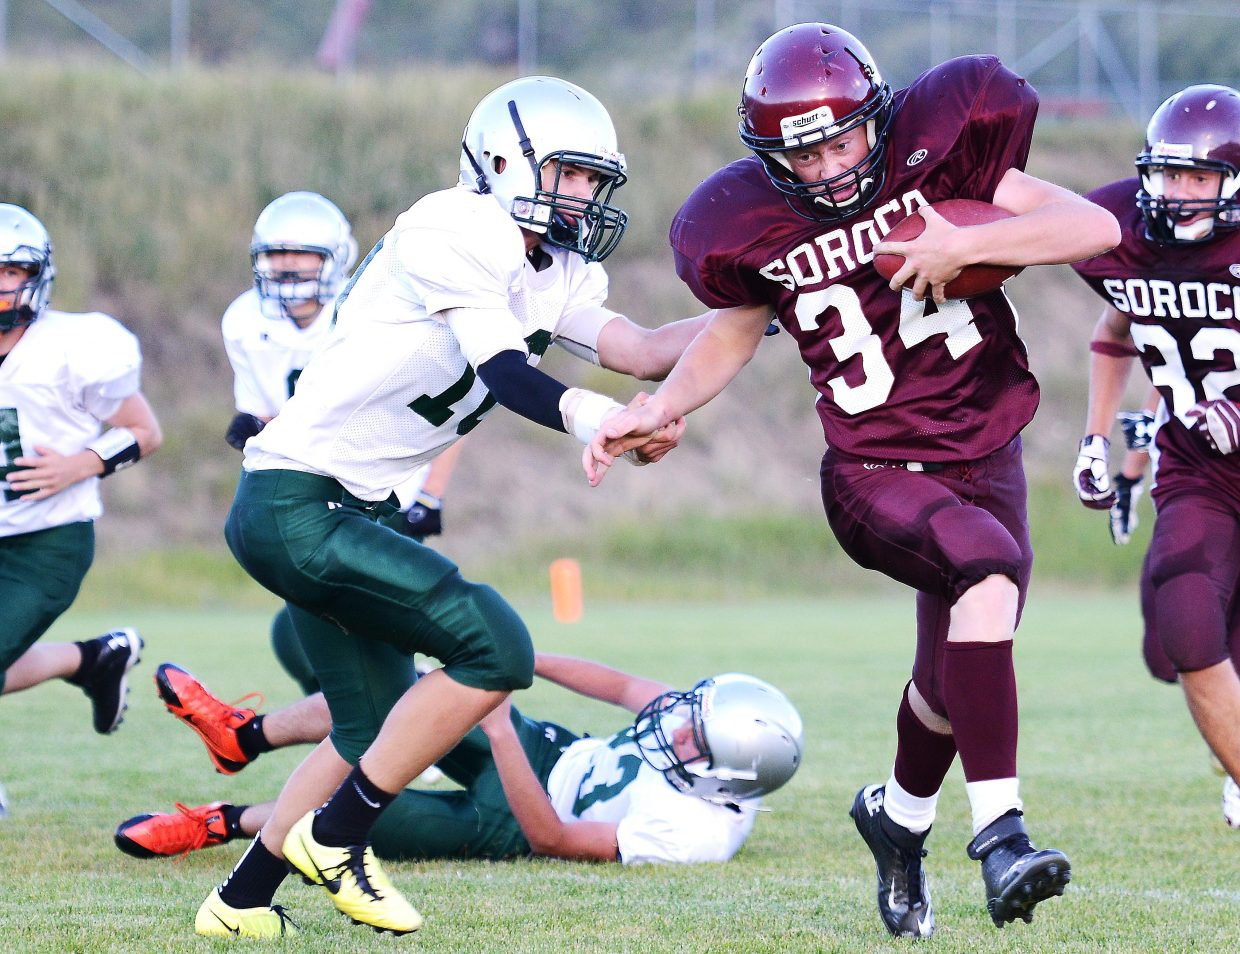 Soroco quarterback Warren Hayes rumbles for a first down Saturday as the Rams beat up Plateau Valley for a 44-22 win.